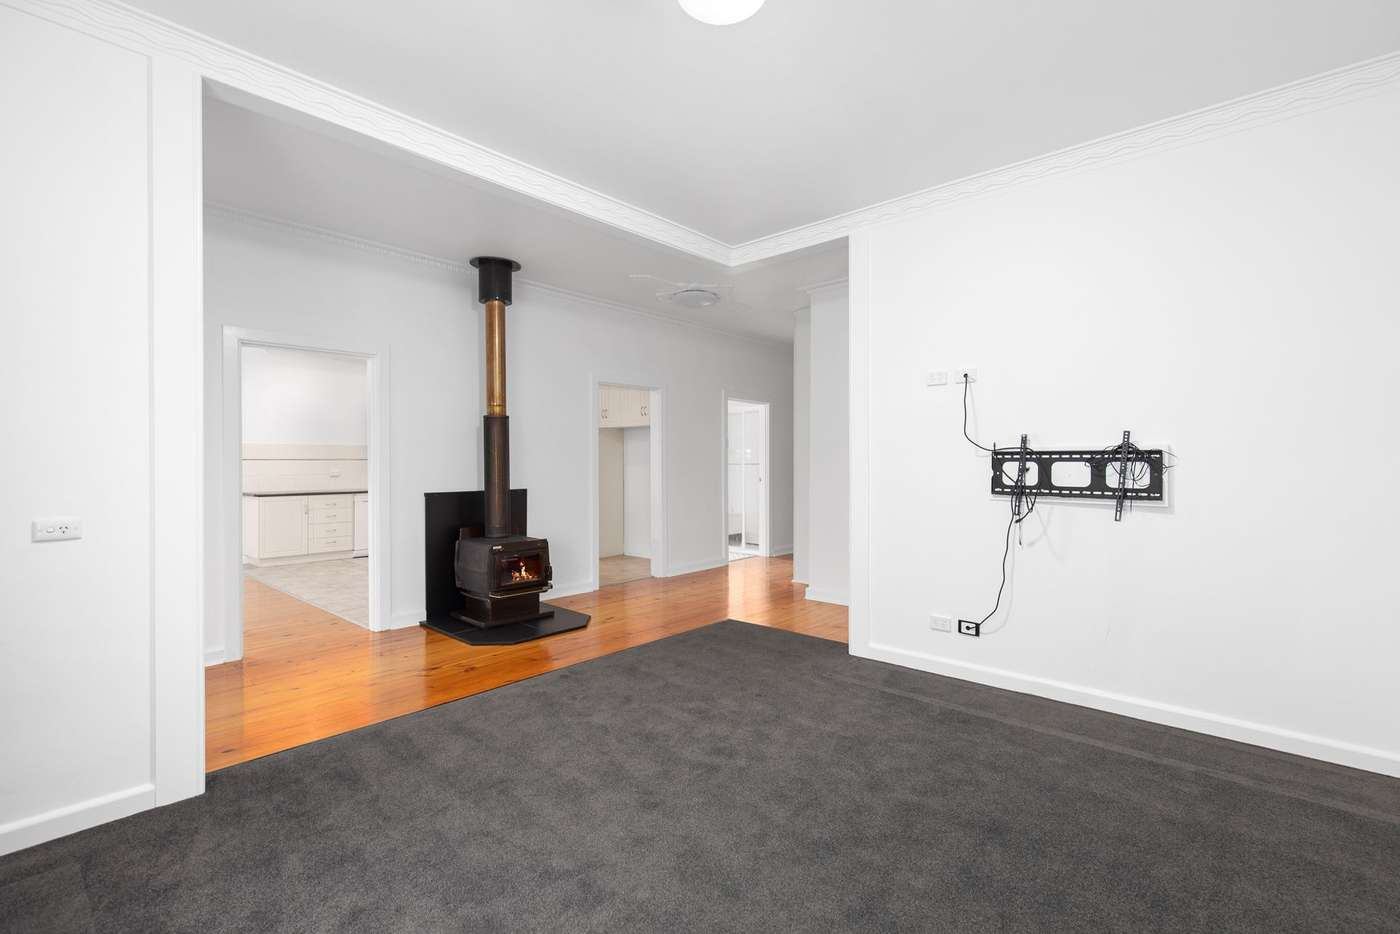 Fifth view of Homely house listing, 4 Shepherdson Road, Mount Gambier SA 5290